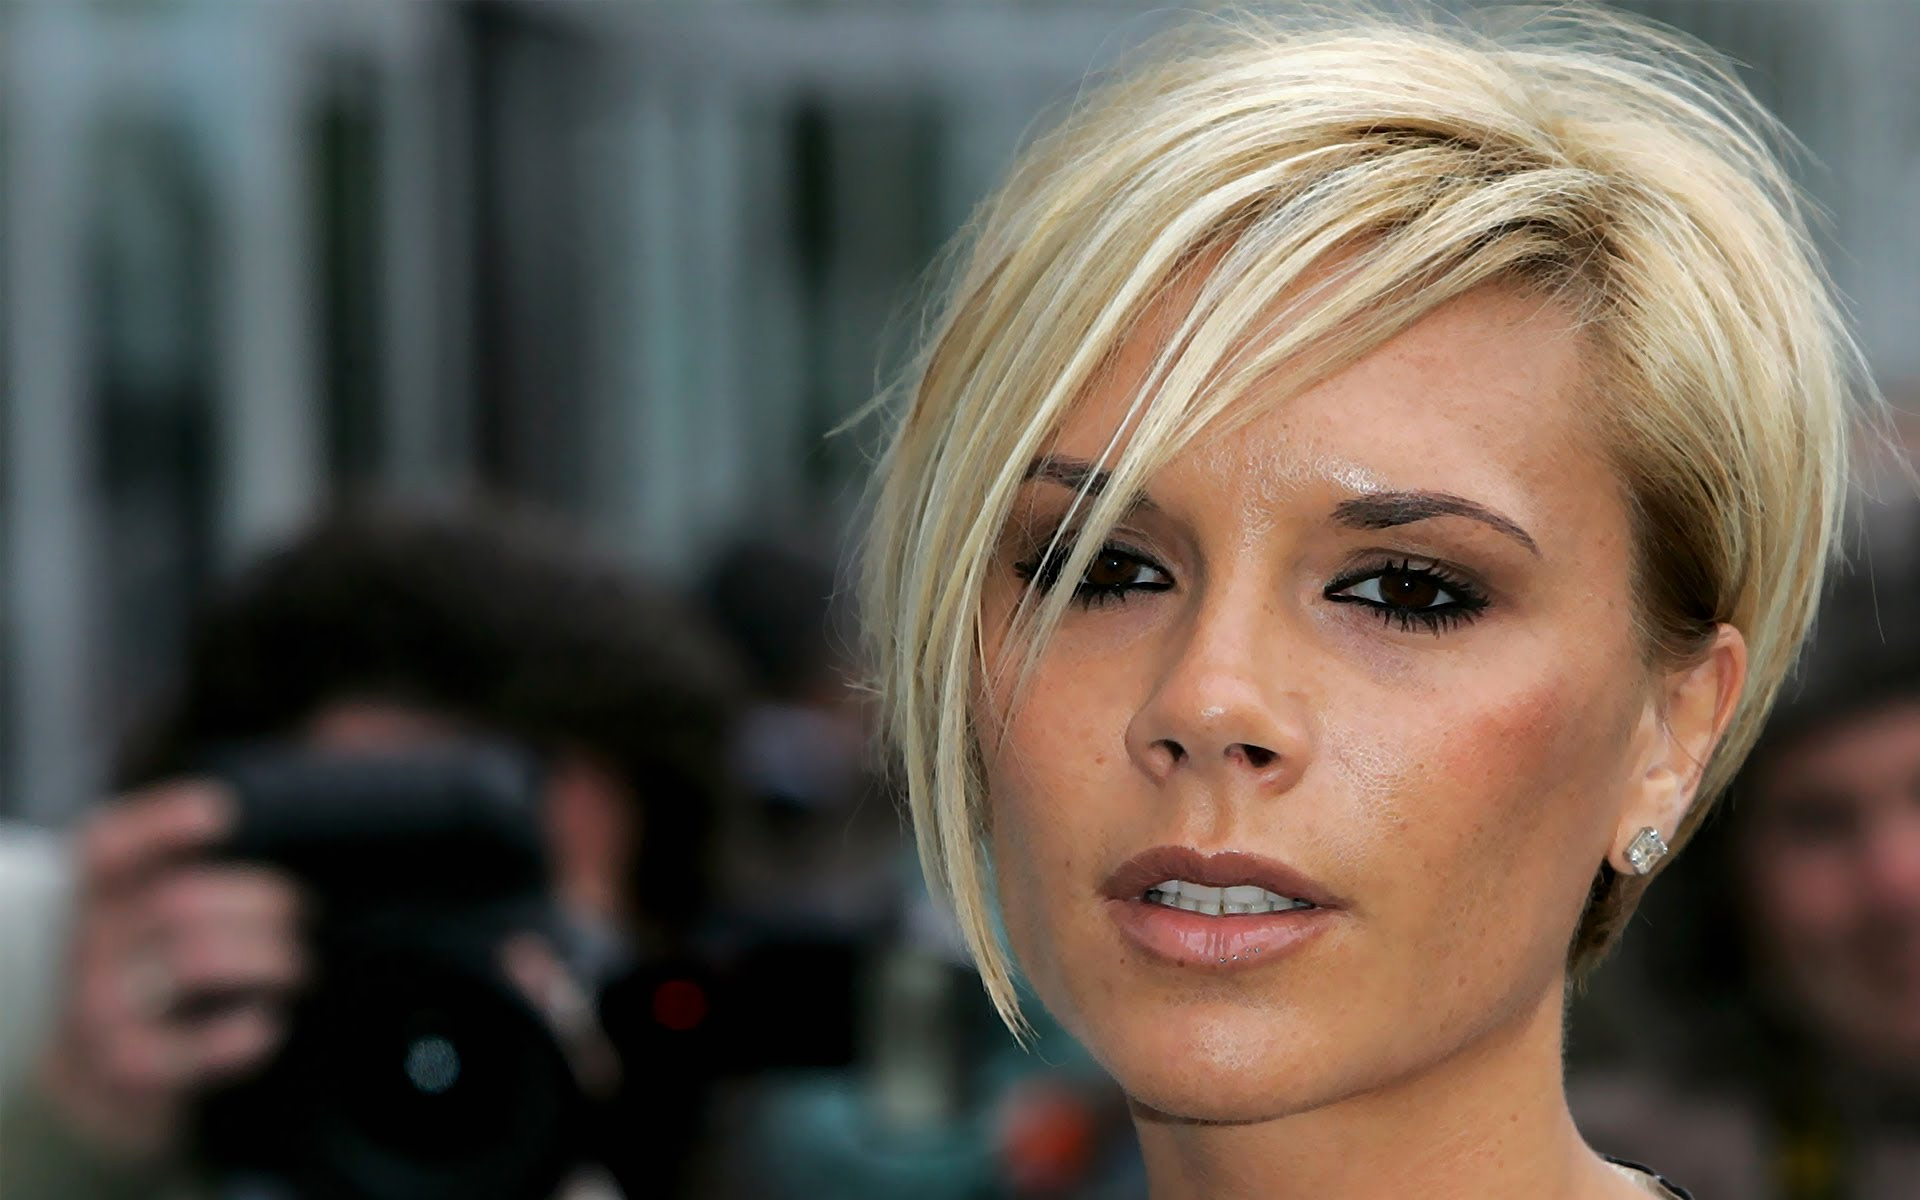 50 Modern Stacked Bob Haircut Ideas | All Women Hairstyles Pertaining To Stacked Sleek White Blonde Bob Haircuts (View 19 of 20)